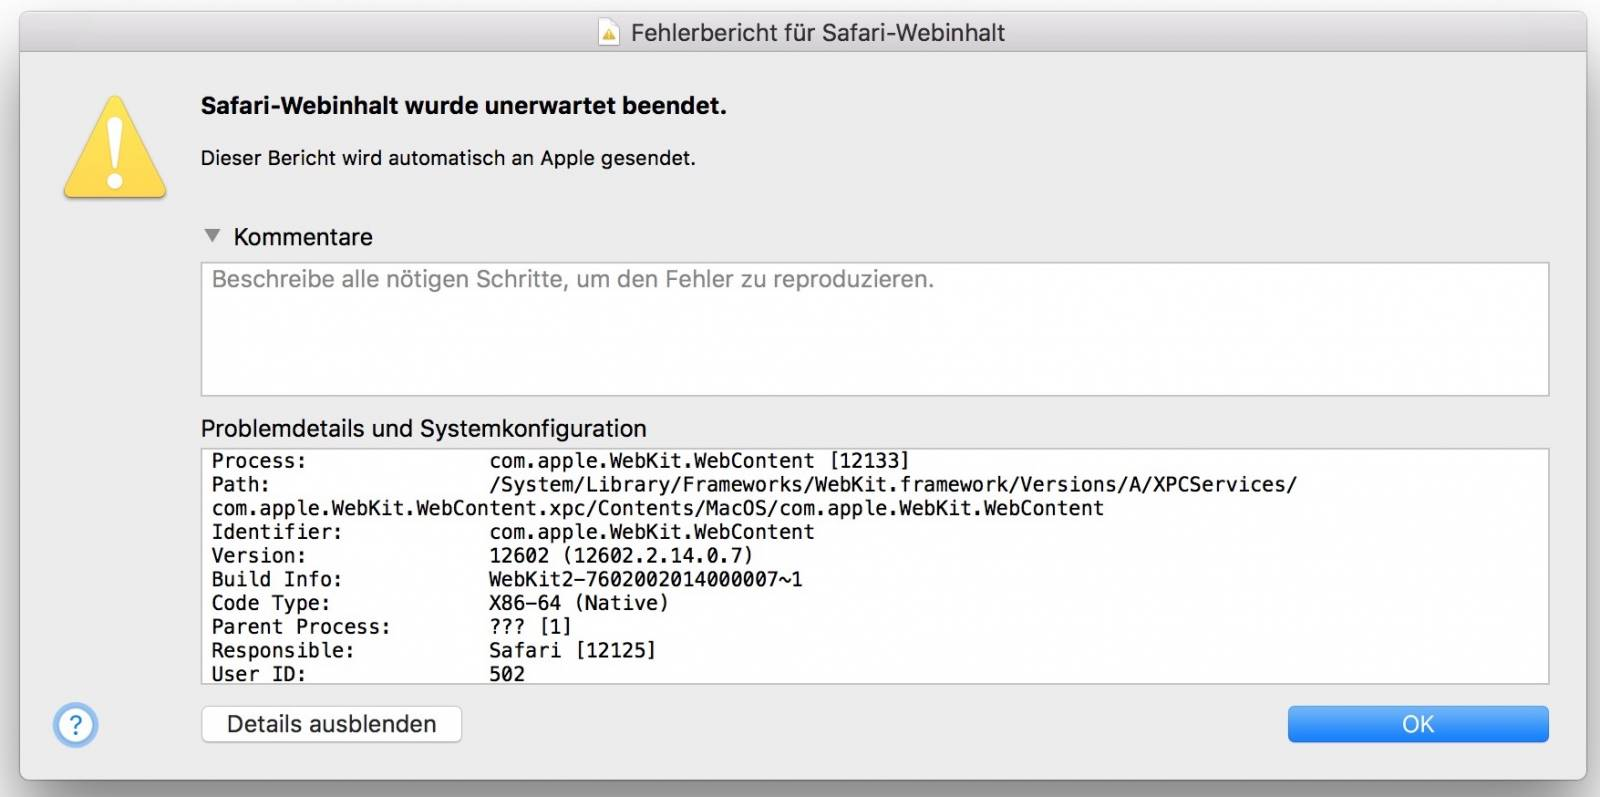 safari-webinhalt